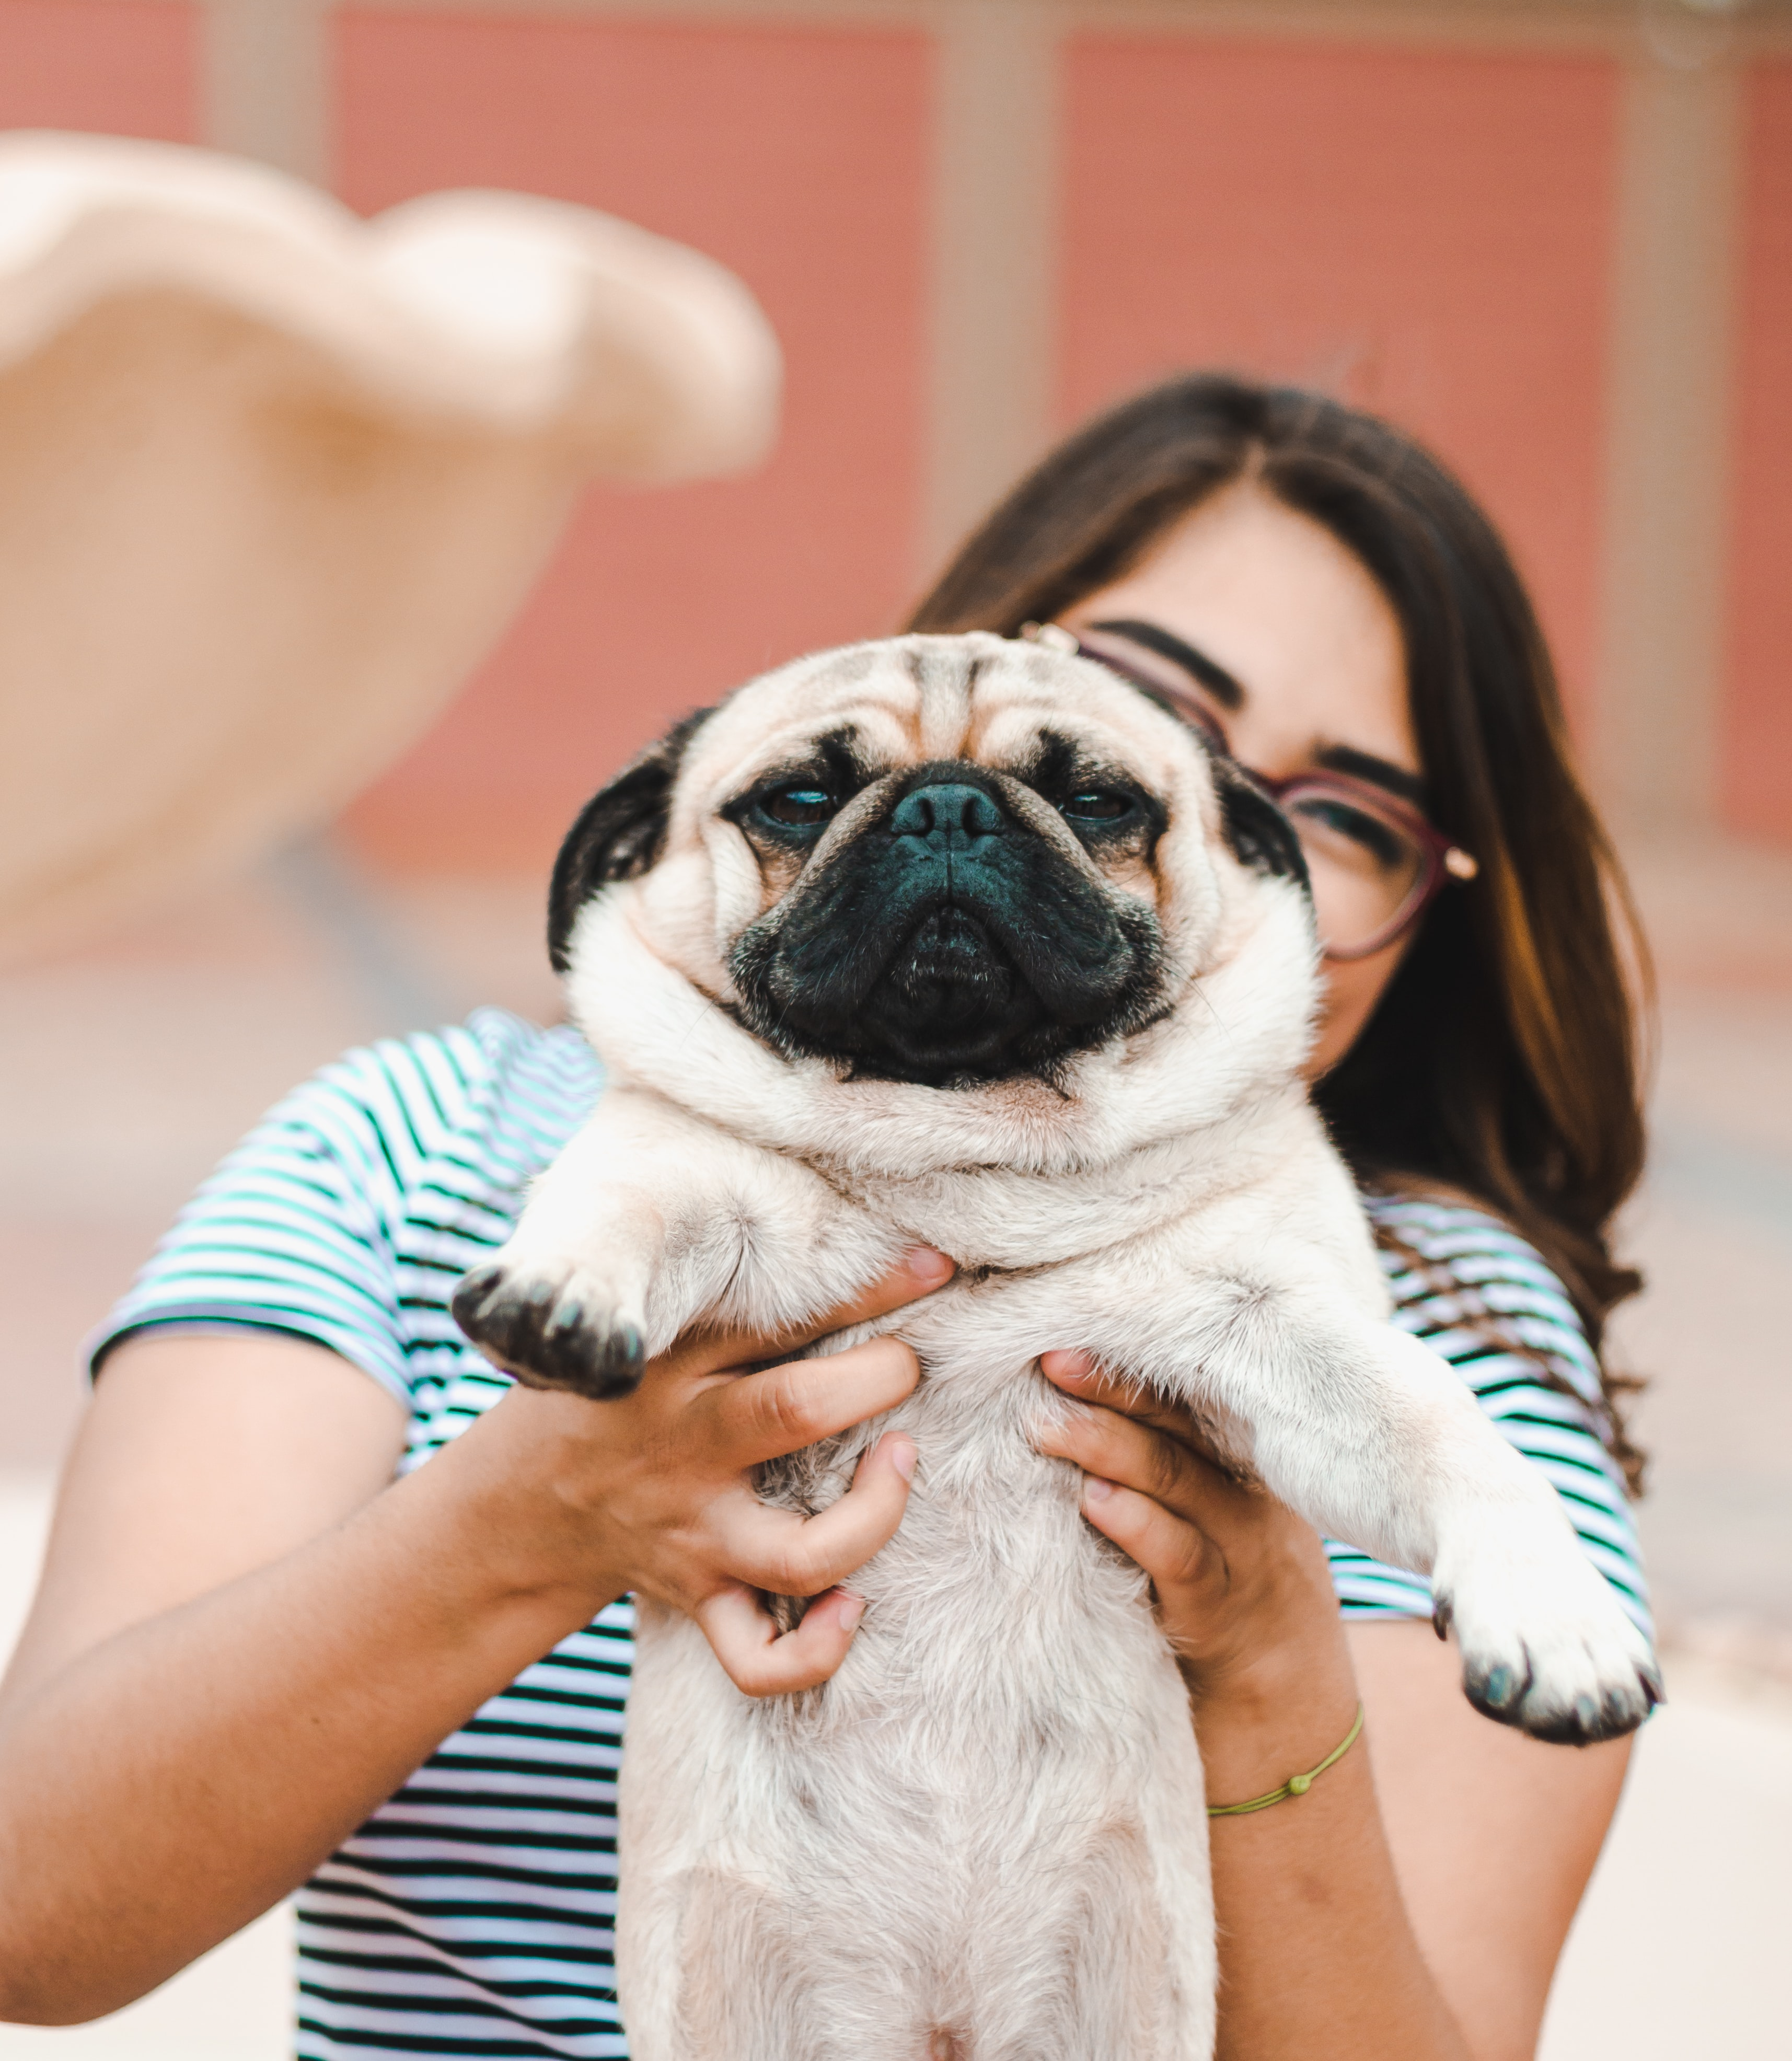 woman holding Pug puppy